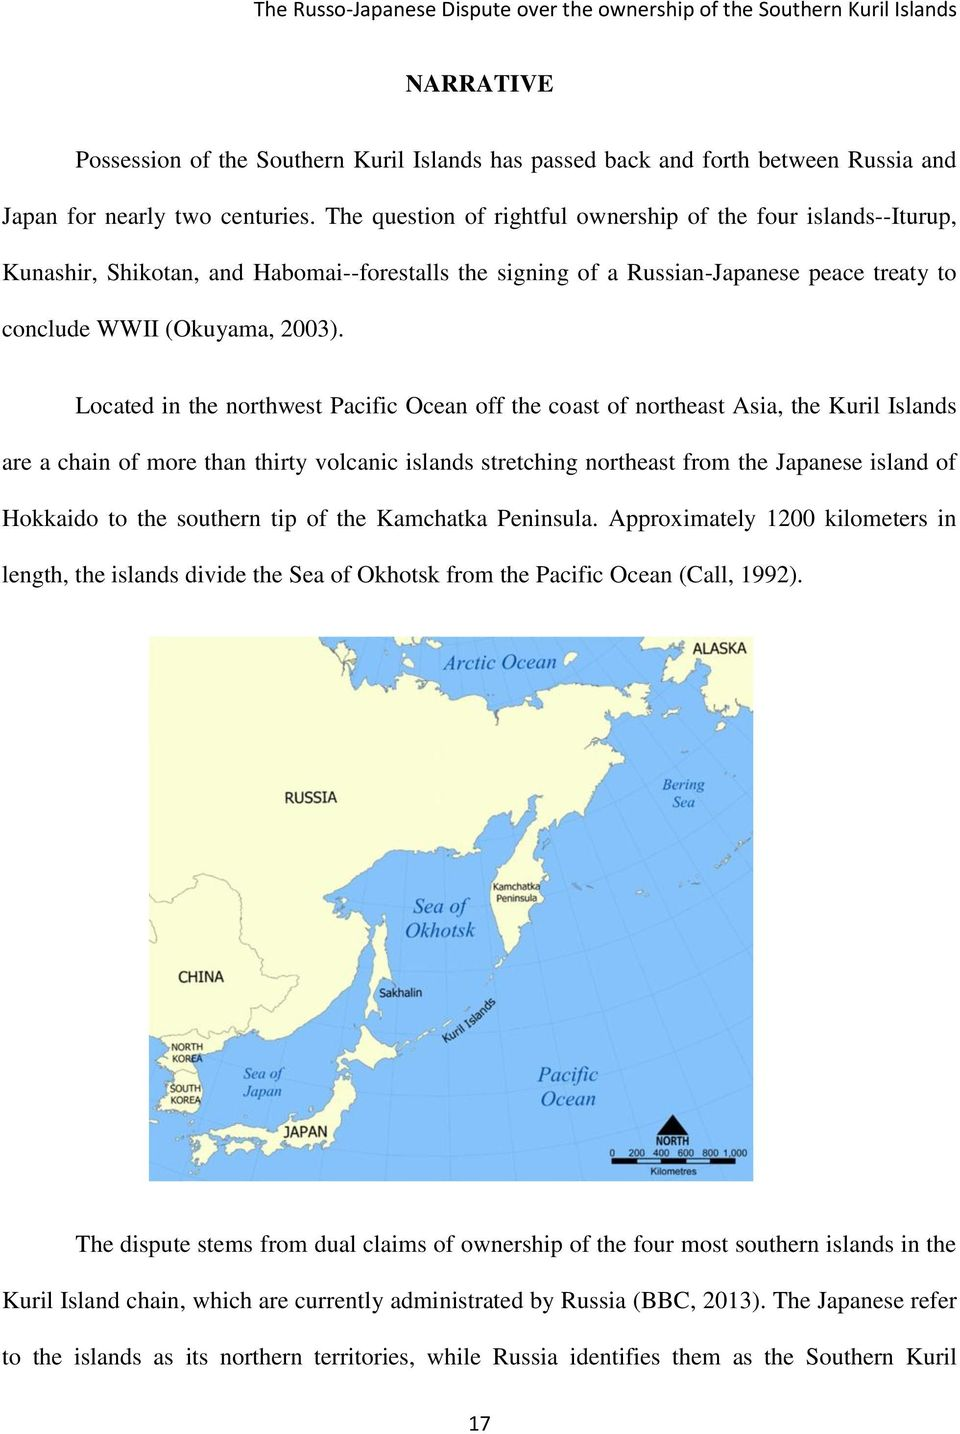 Located in the northwest Pacific Ocean off the coast of northeast Asia, the Kuril Islands are a chain of more than thirty volcanic islands stretching northeast from the Japanese island of Hokkaido to